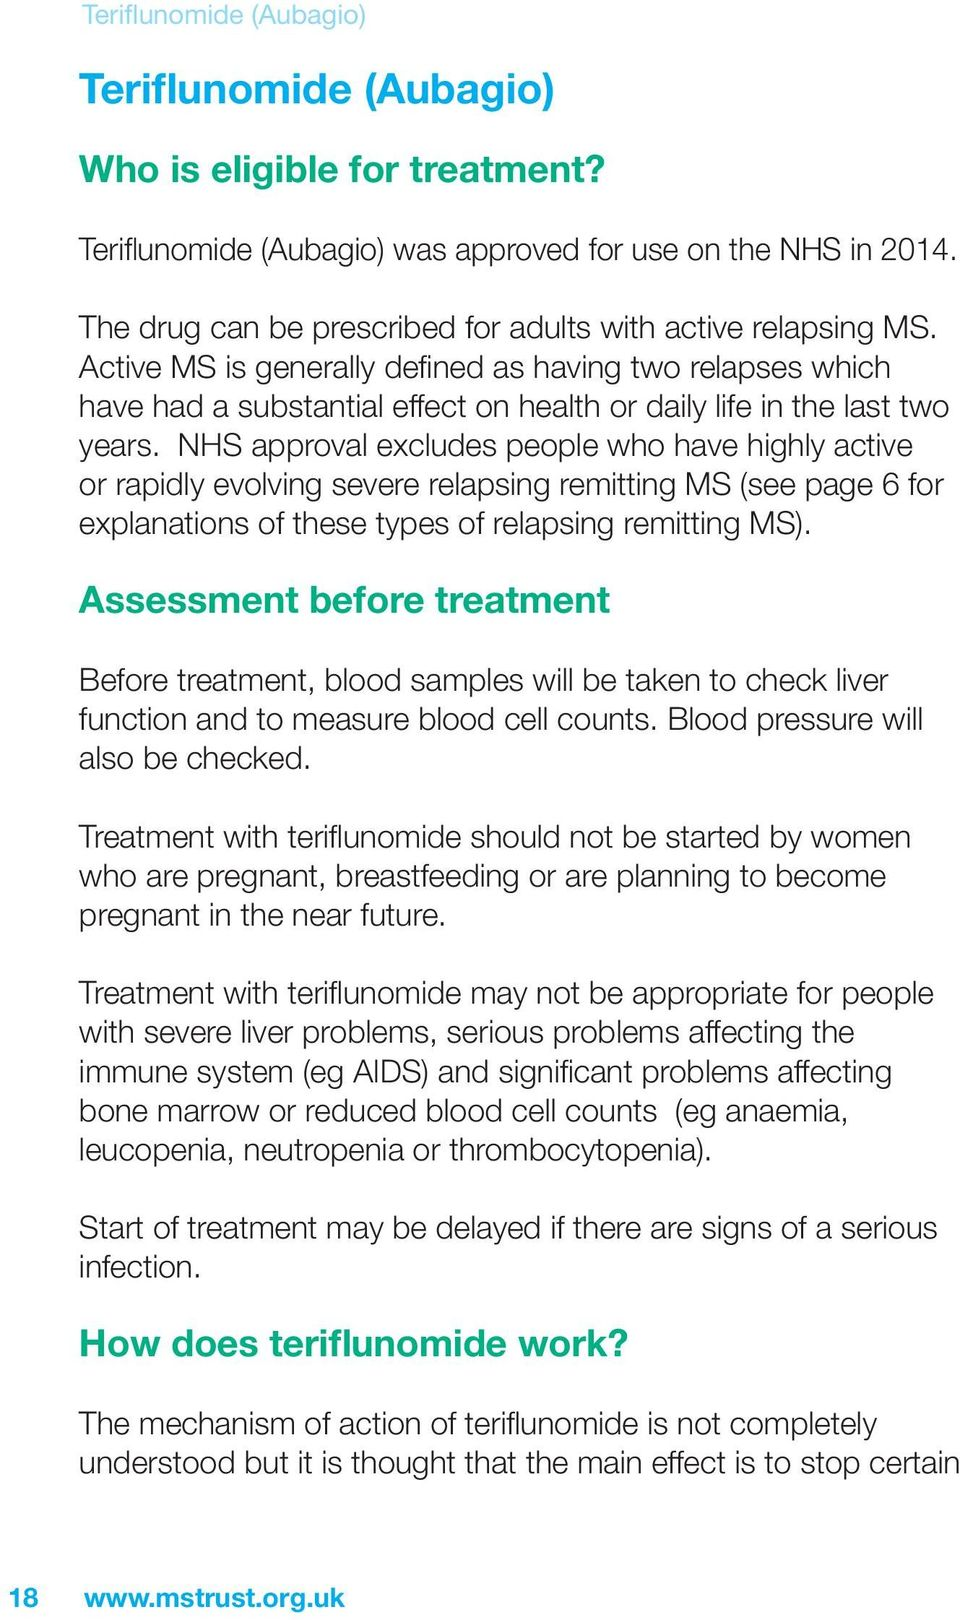 NHS approval excludes people who have highly active or rapidly evolving severe relapsing remitting MS (see page 6 for explanations of these types of relapsing remitting MS).